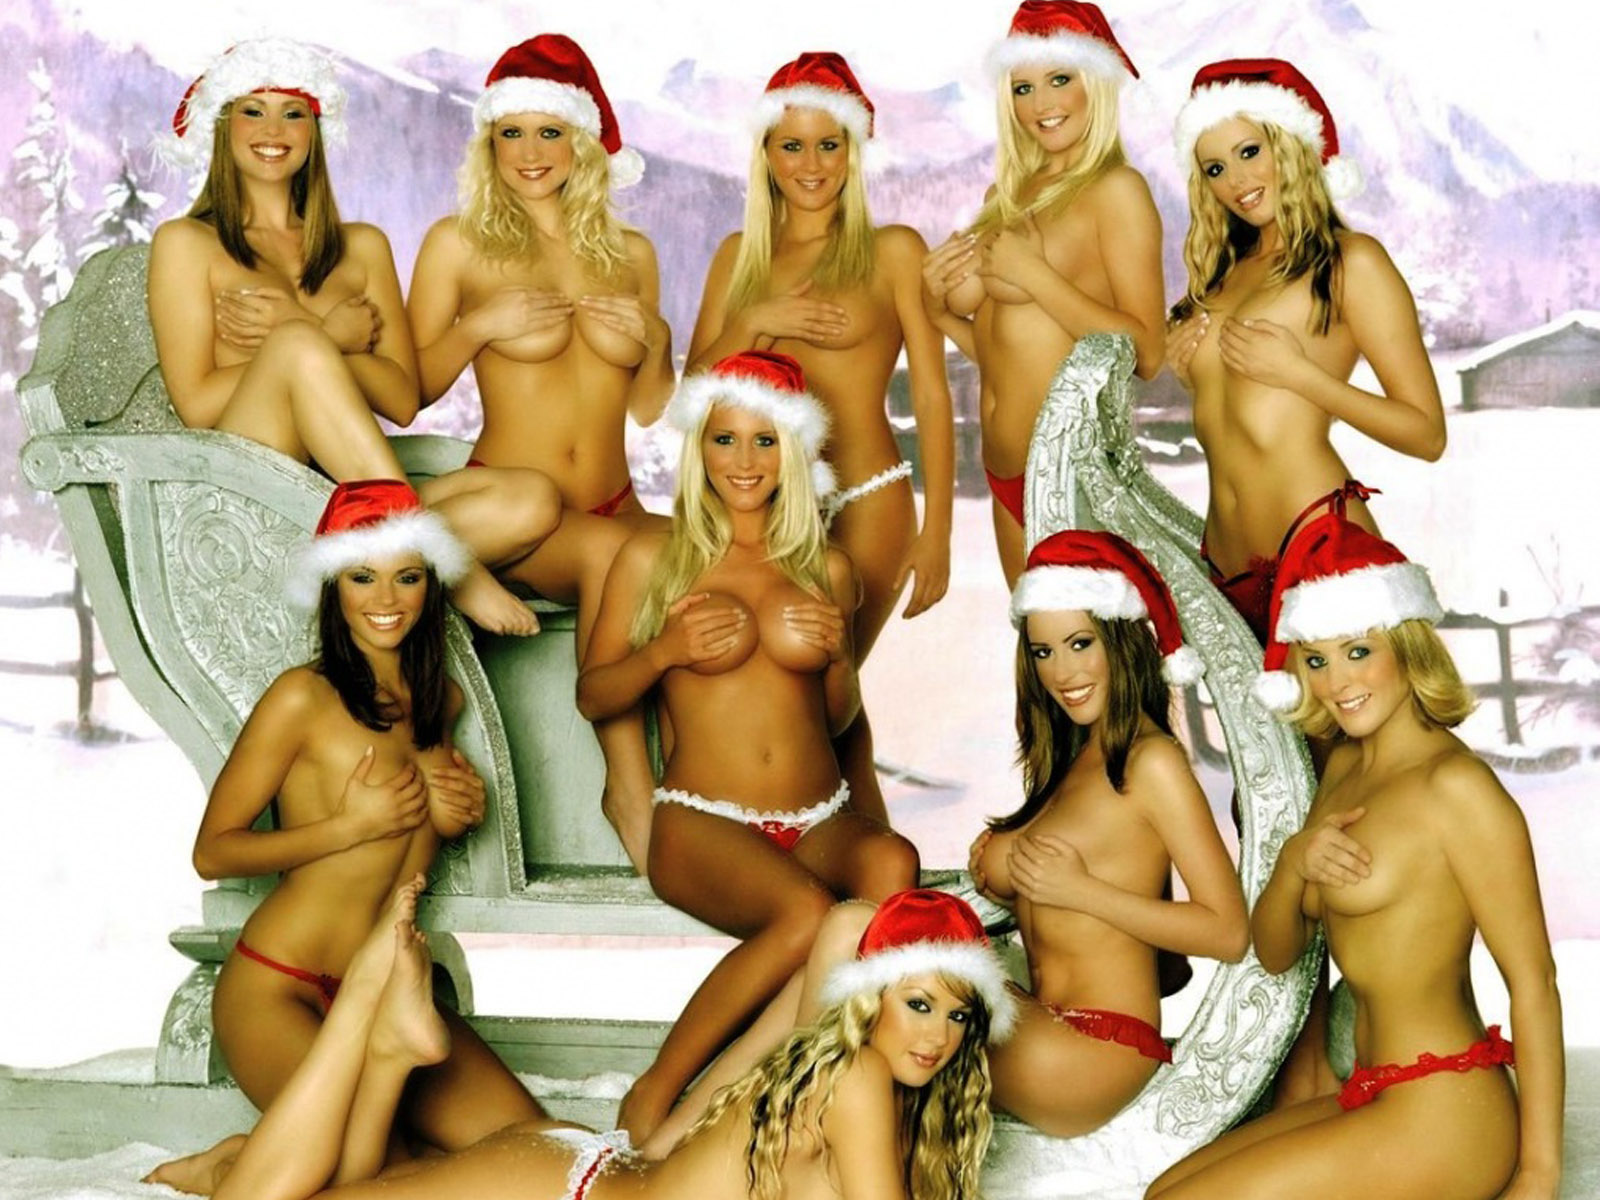 Hot Christmas Girls Wallpaper. 1600 x 1200.Funny Happy Free New Year Text Messages